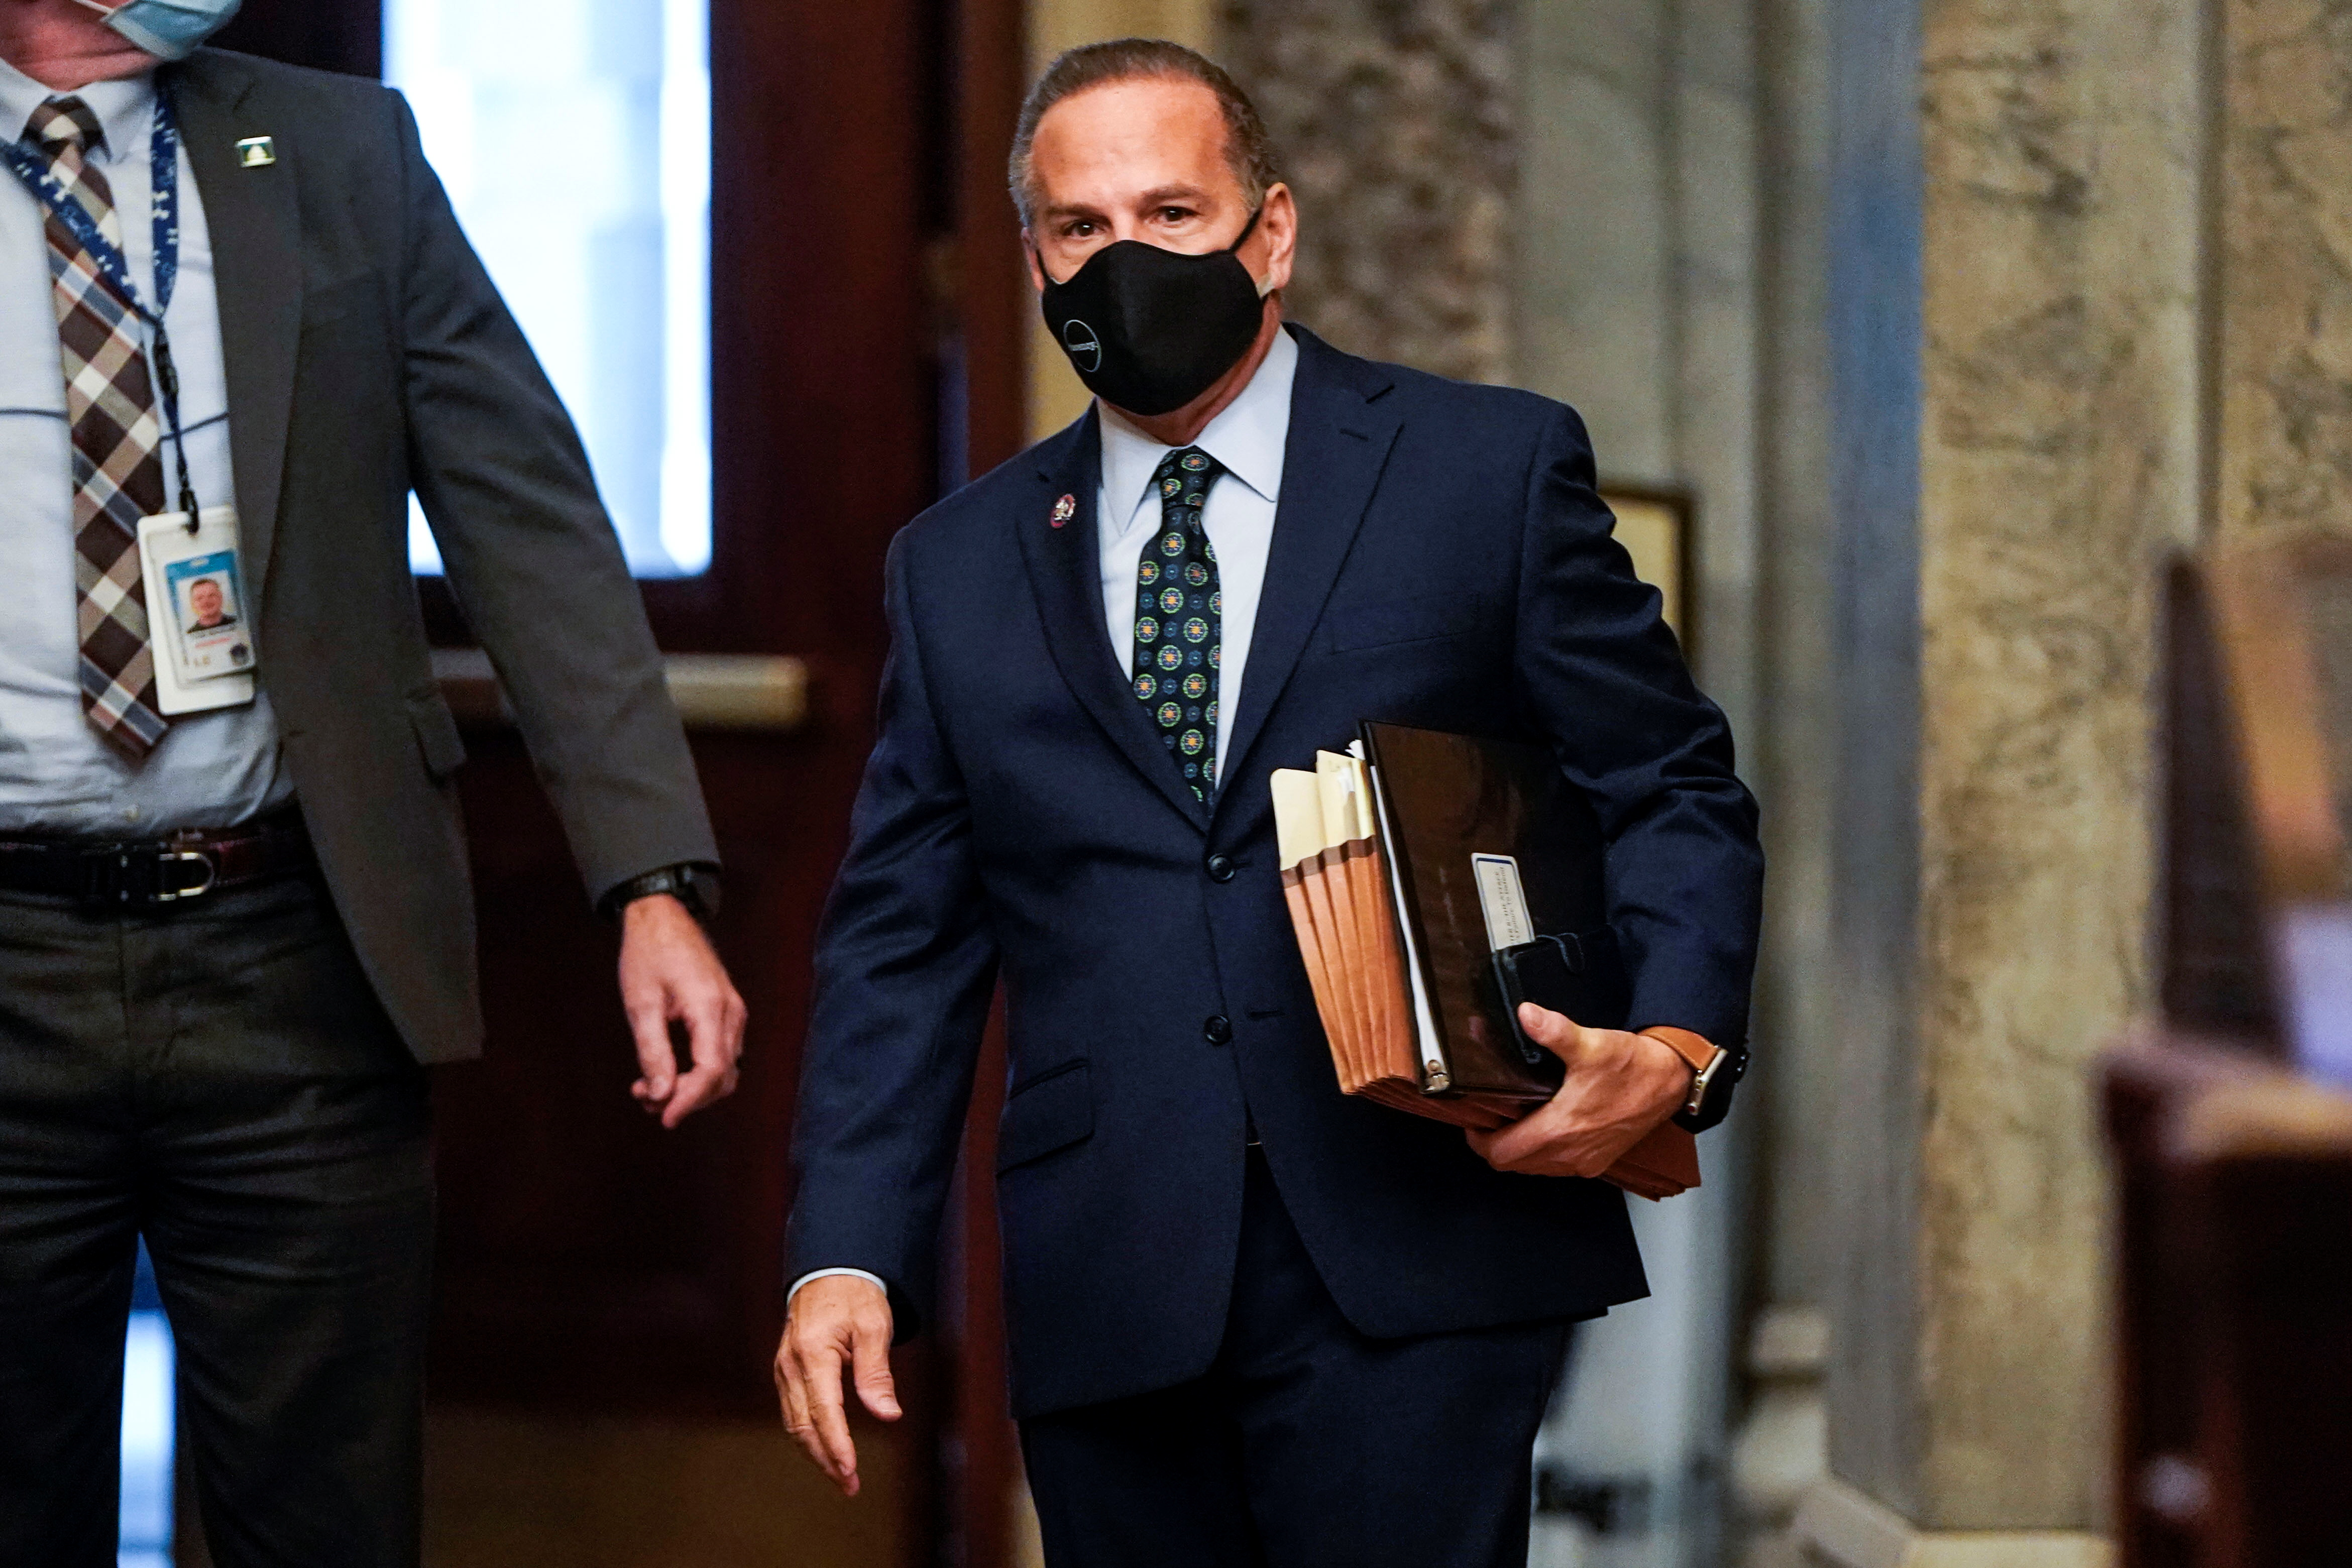 U.S. House impeachment manager Rep. David Cicilline (D-RI) arrives prior to the start of opening arguments in the impeachment trial of former U.S. President Donald Trump, on charges of inciting the deadly attack on the U.S. Capitol, in Washington, U.S., February 10, 2021. REUTERS/Joshua Roberts/Pool